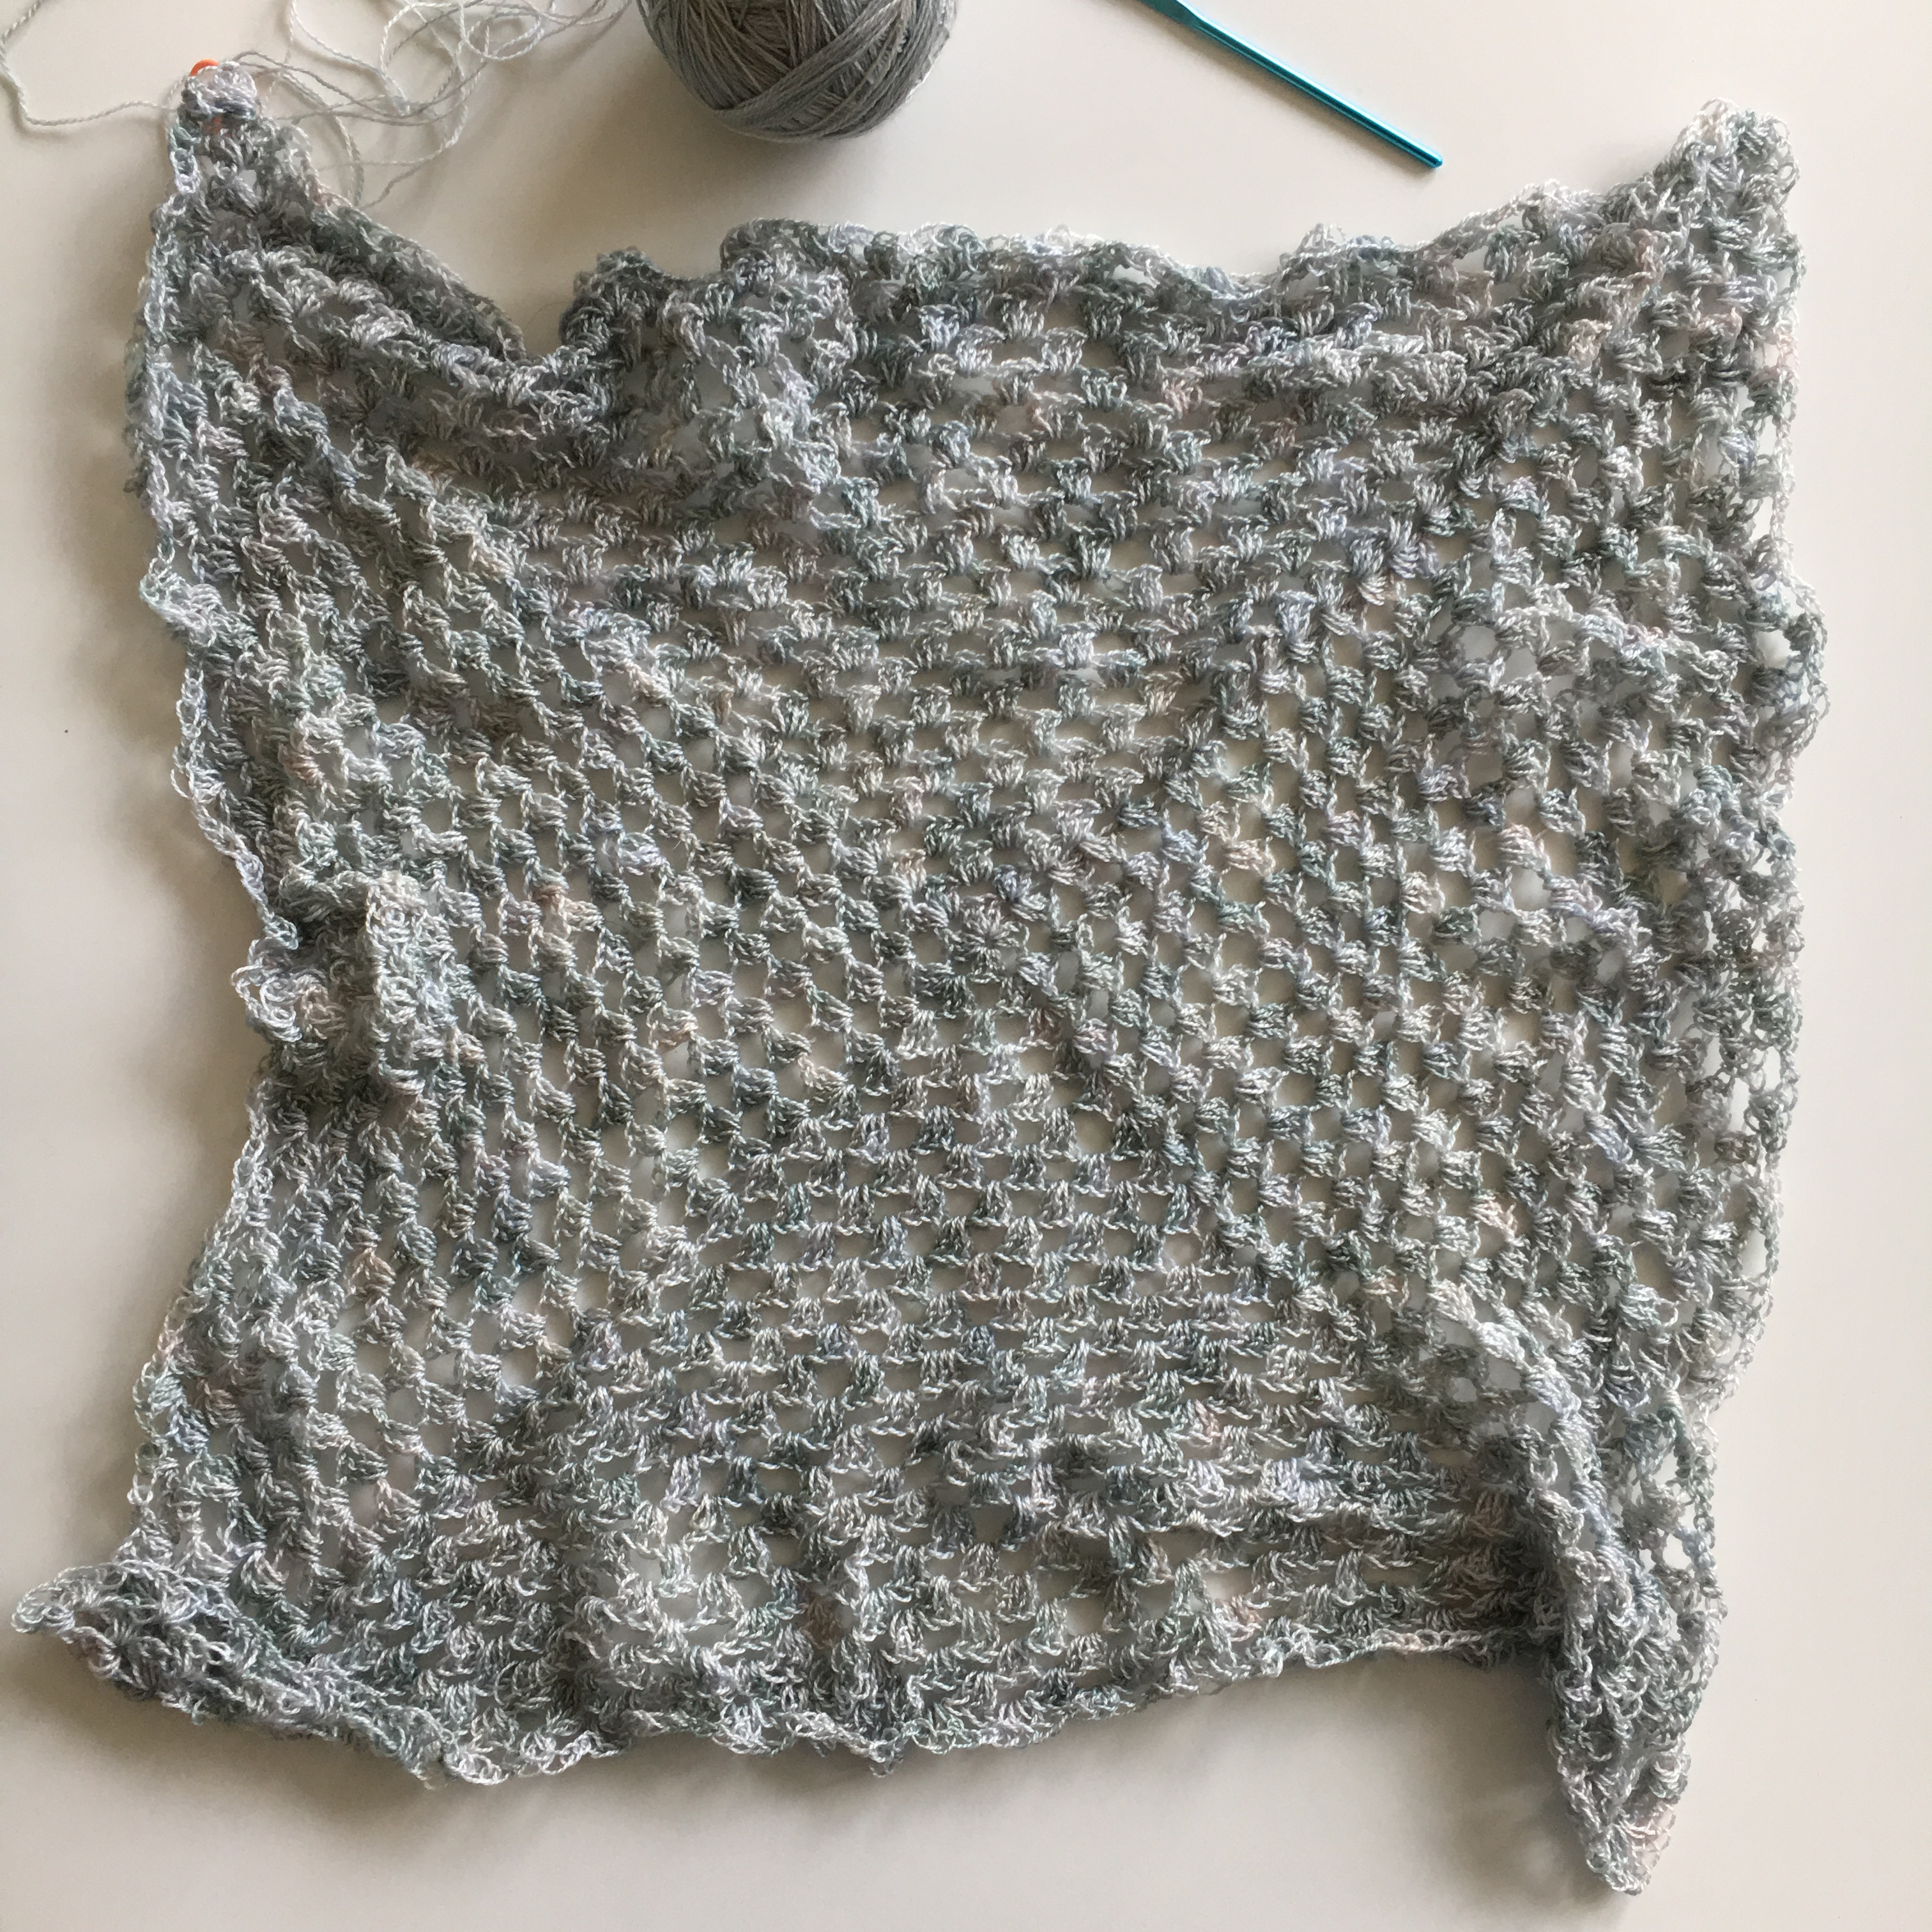 A giant granny square work in progress